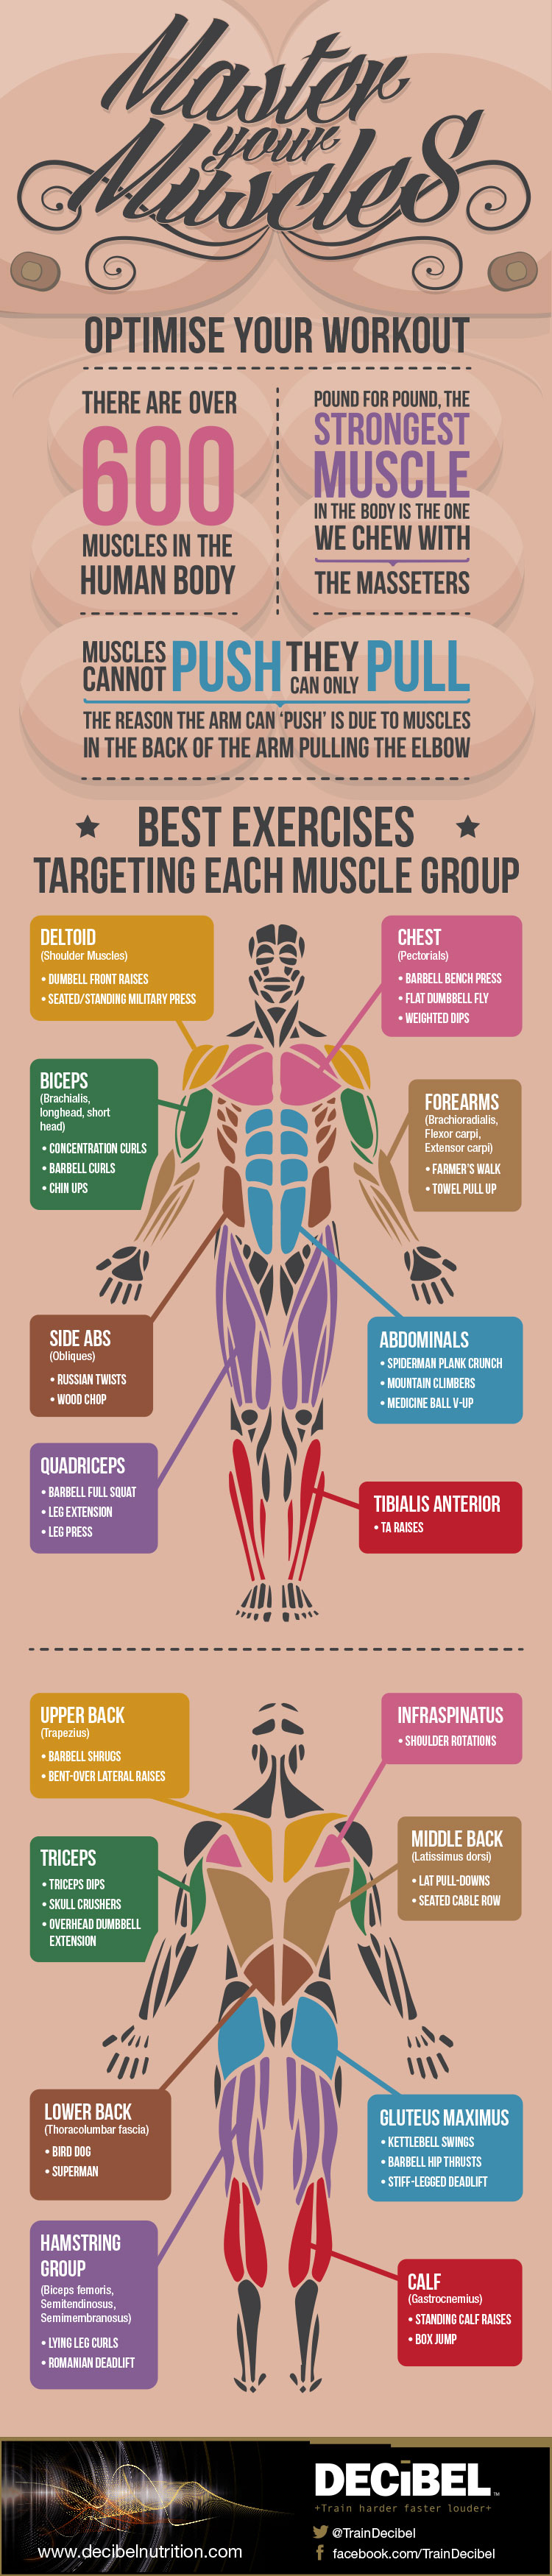 Best Exercises For Each Muscle Group Infographic